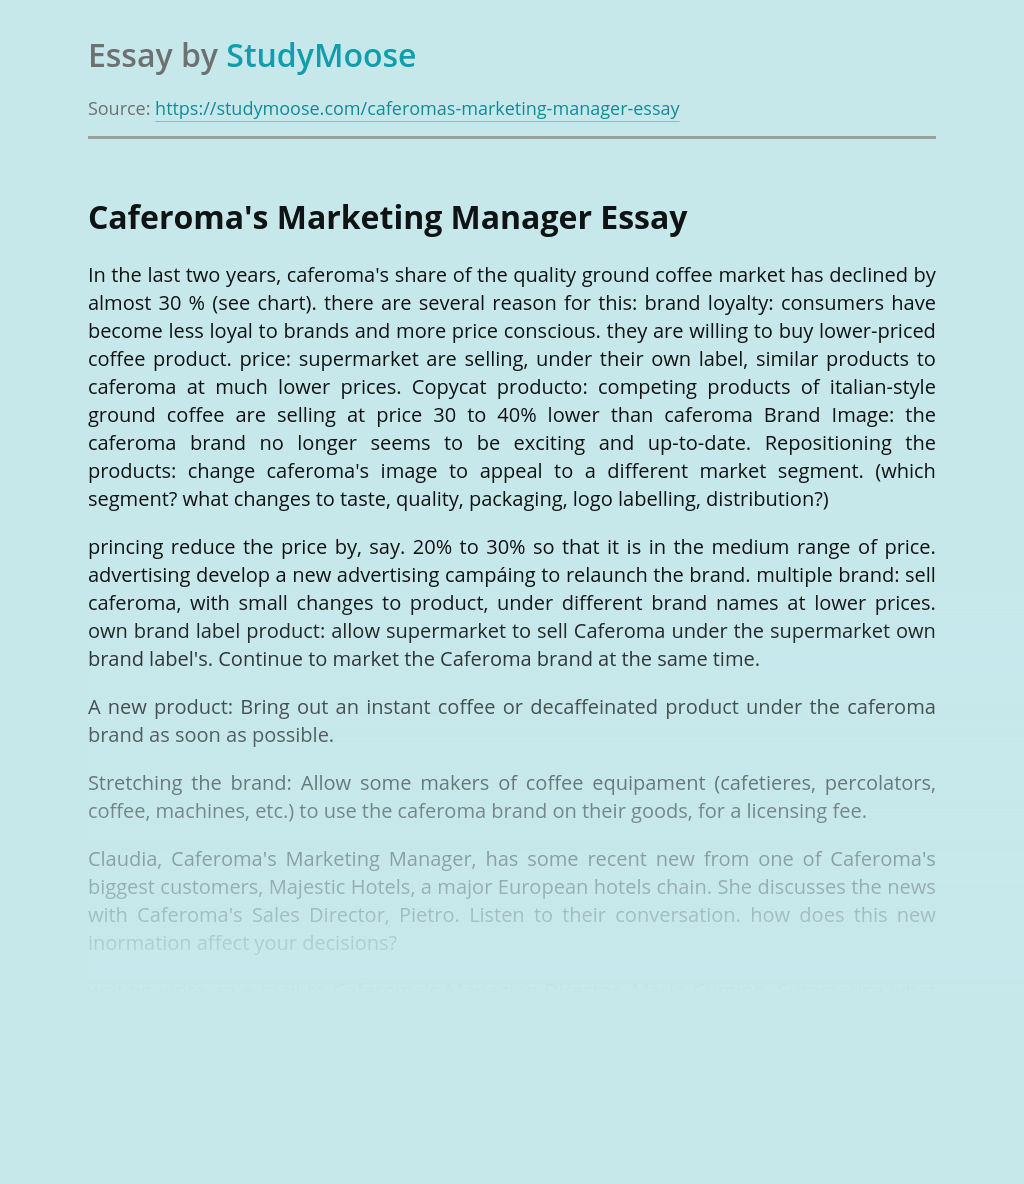 Caferoma's Marketing Manager